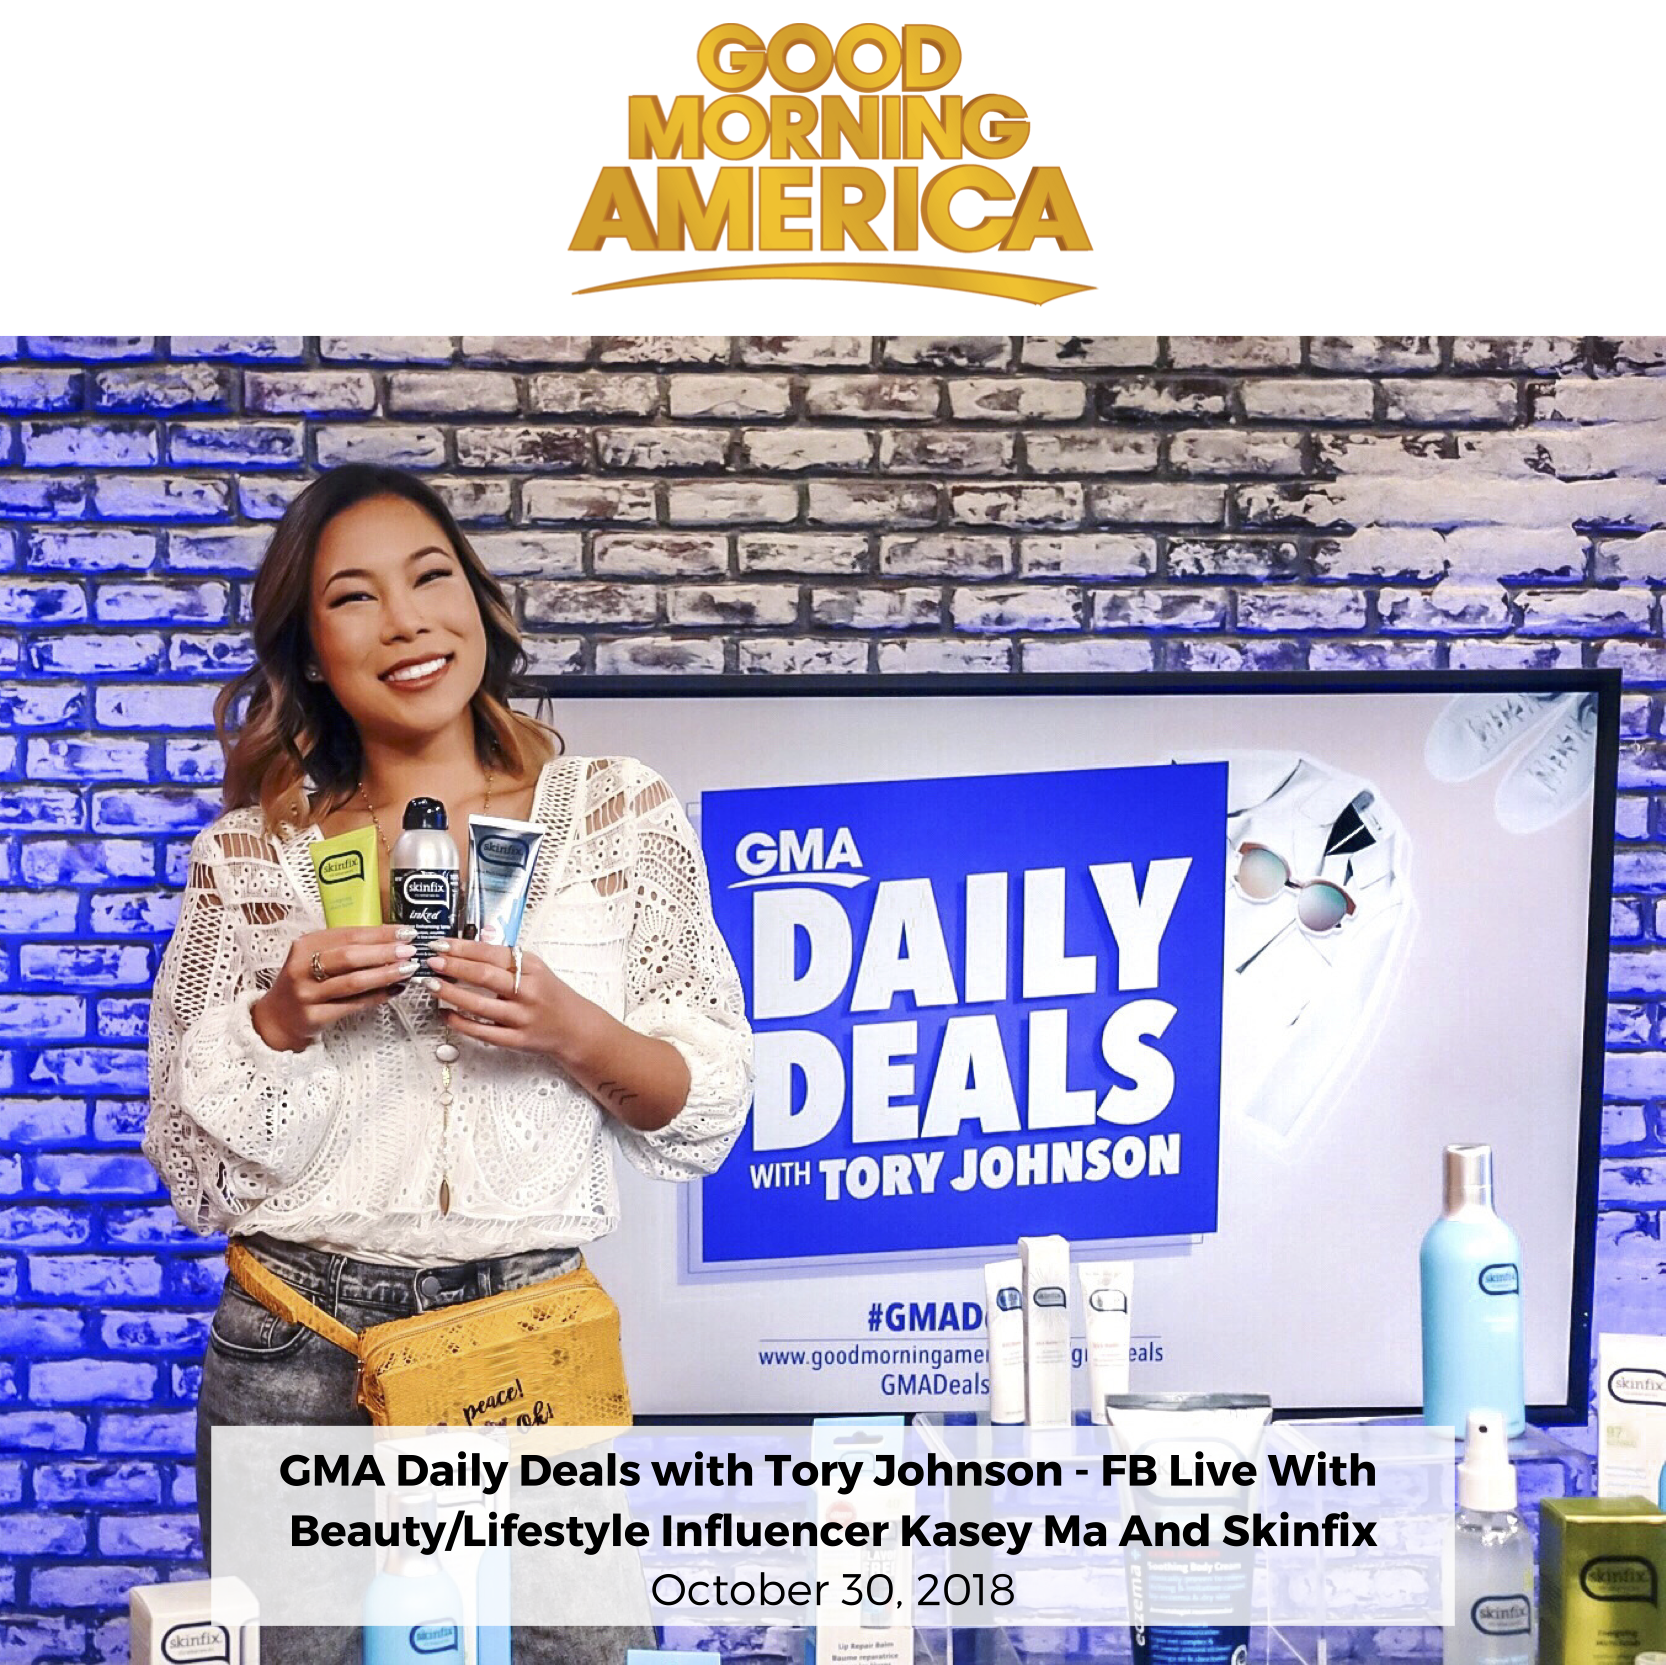 Beauty Blogger Fashion Blogger Kasey Ma TheStyleWright Good Morning America Daily Deals Skinfix Facebook Live Skincare Beauty Influencer Fashion Influencer